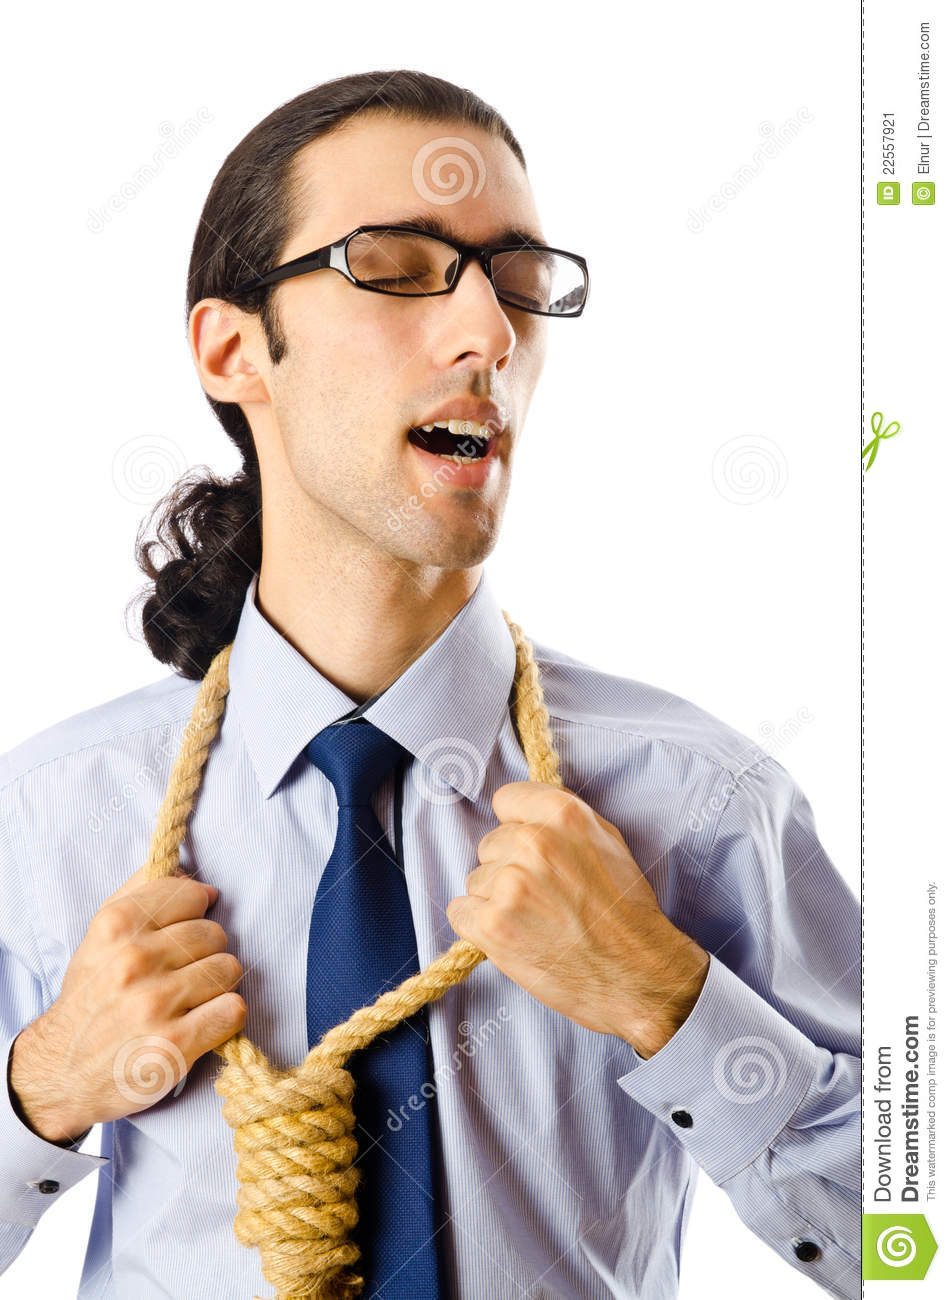 Stock Photo Aletia 164802918: Businessman With Thoughts Of Suicide Stock Image